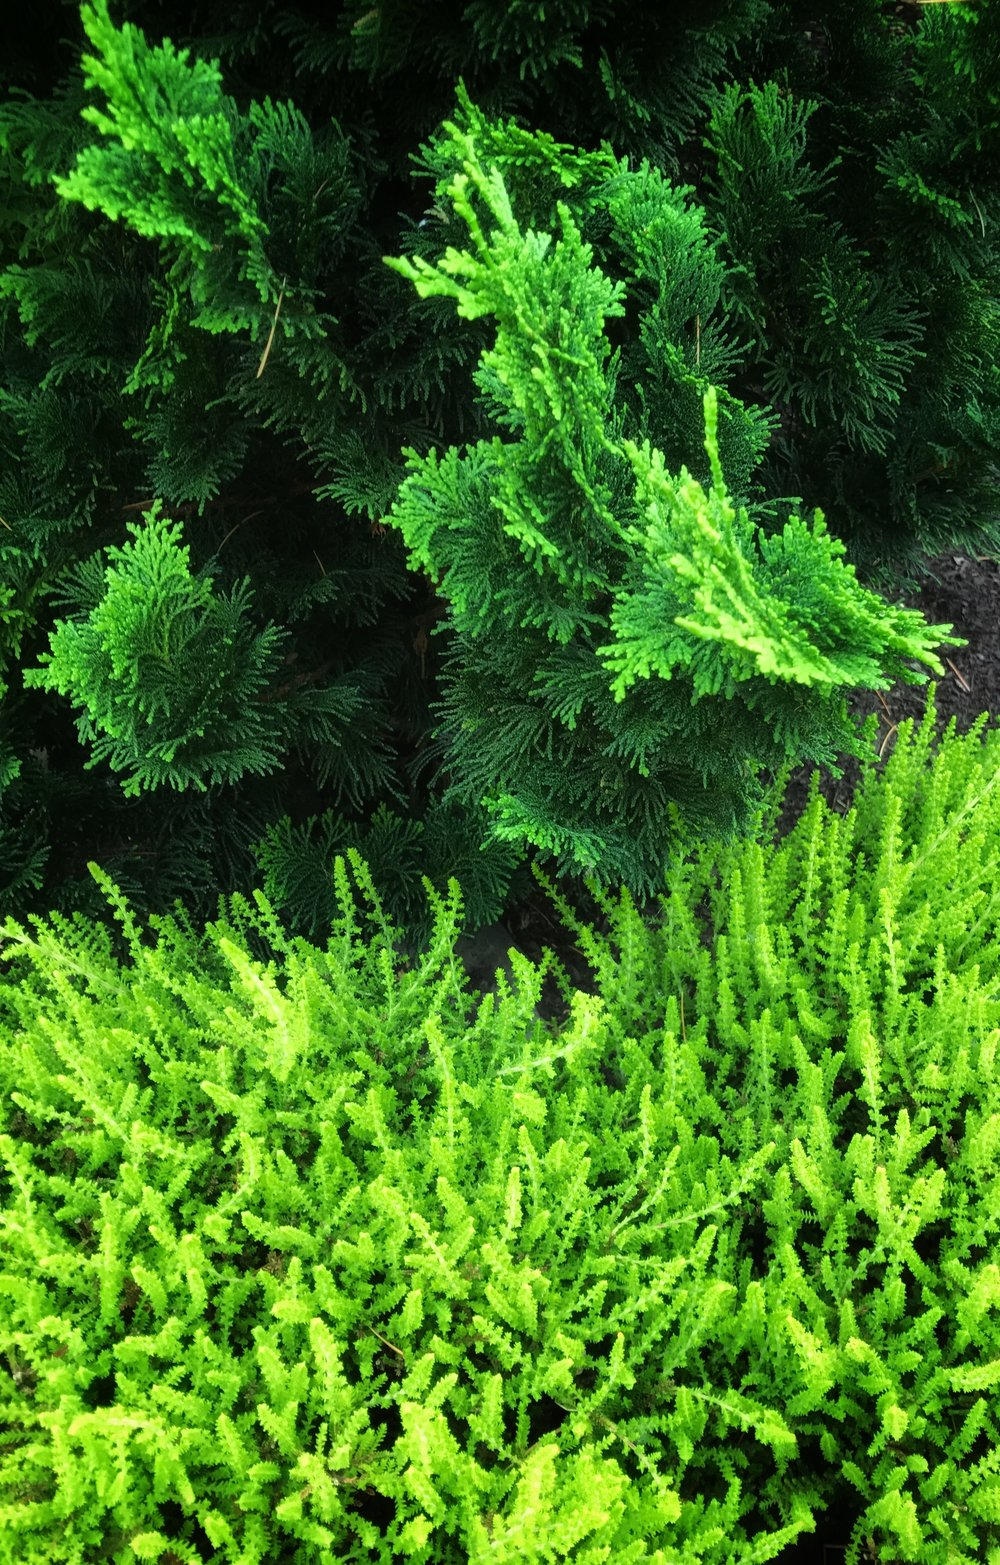 Foliage combo: Chamaecyparis obtusa (Hinoki cypress) cultivar and Calluna (Heather).